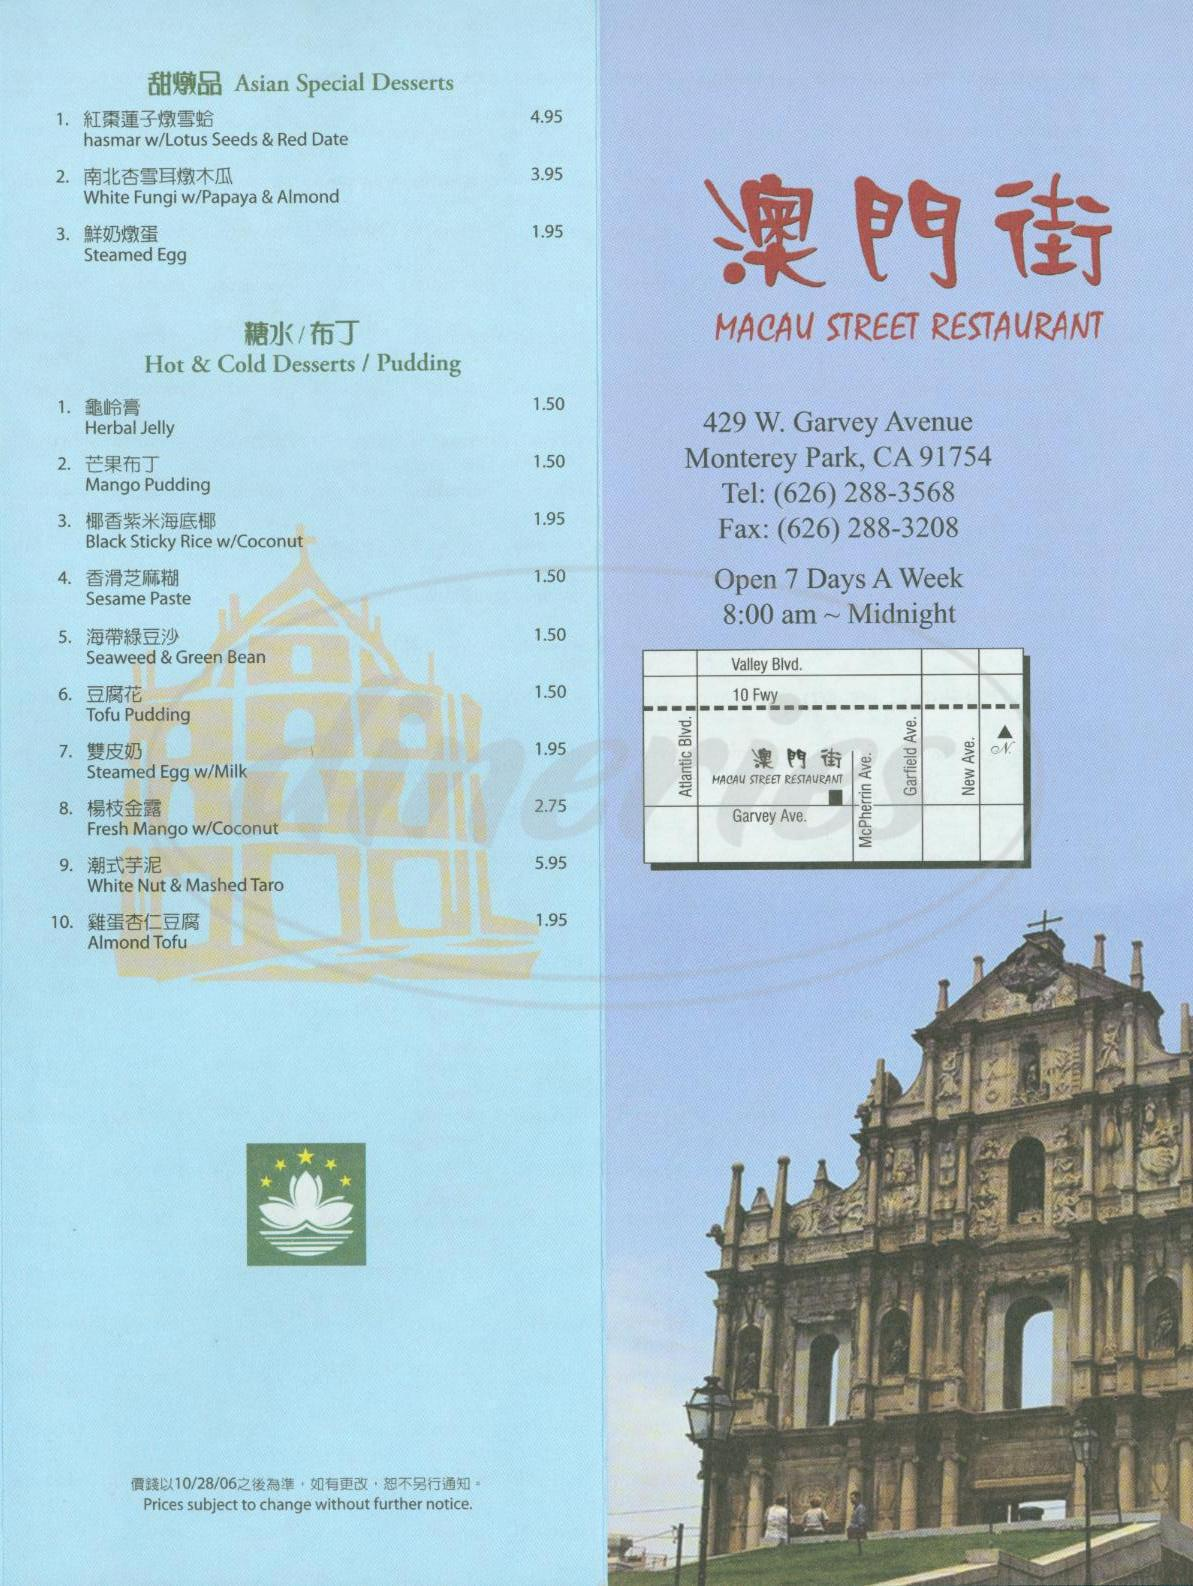 menu for Macau Street Restaurant